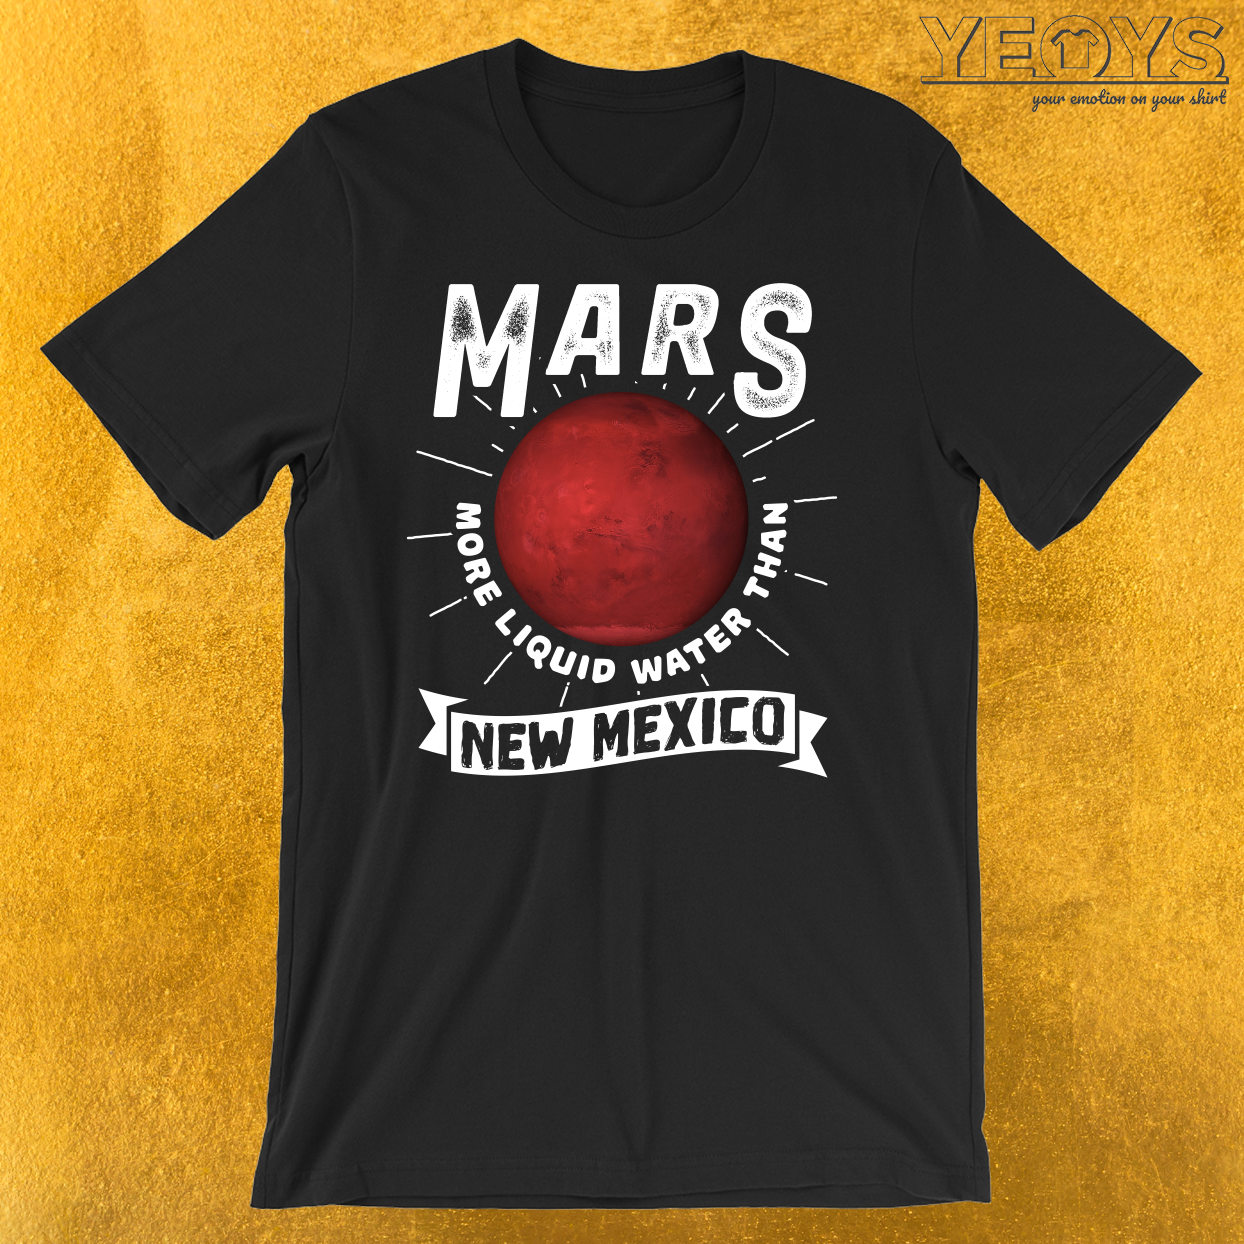 Mars More Liquid Water Than New Mexico T-Shirt